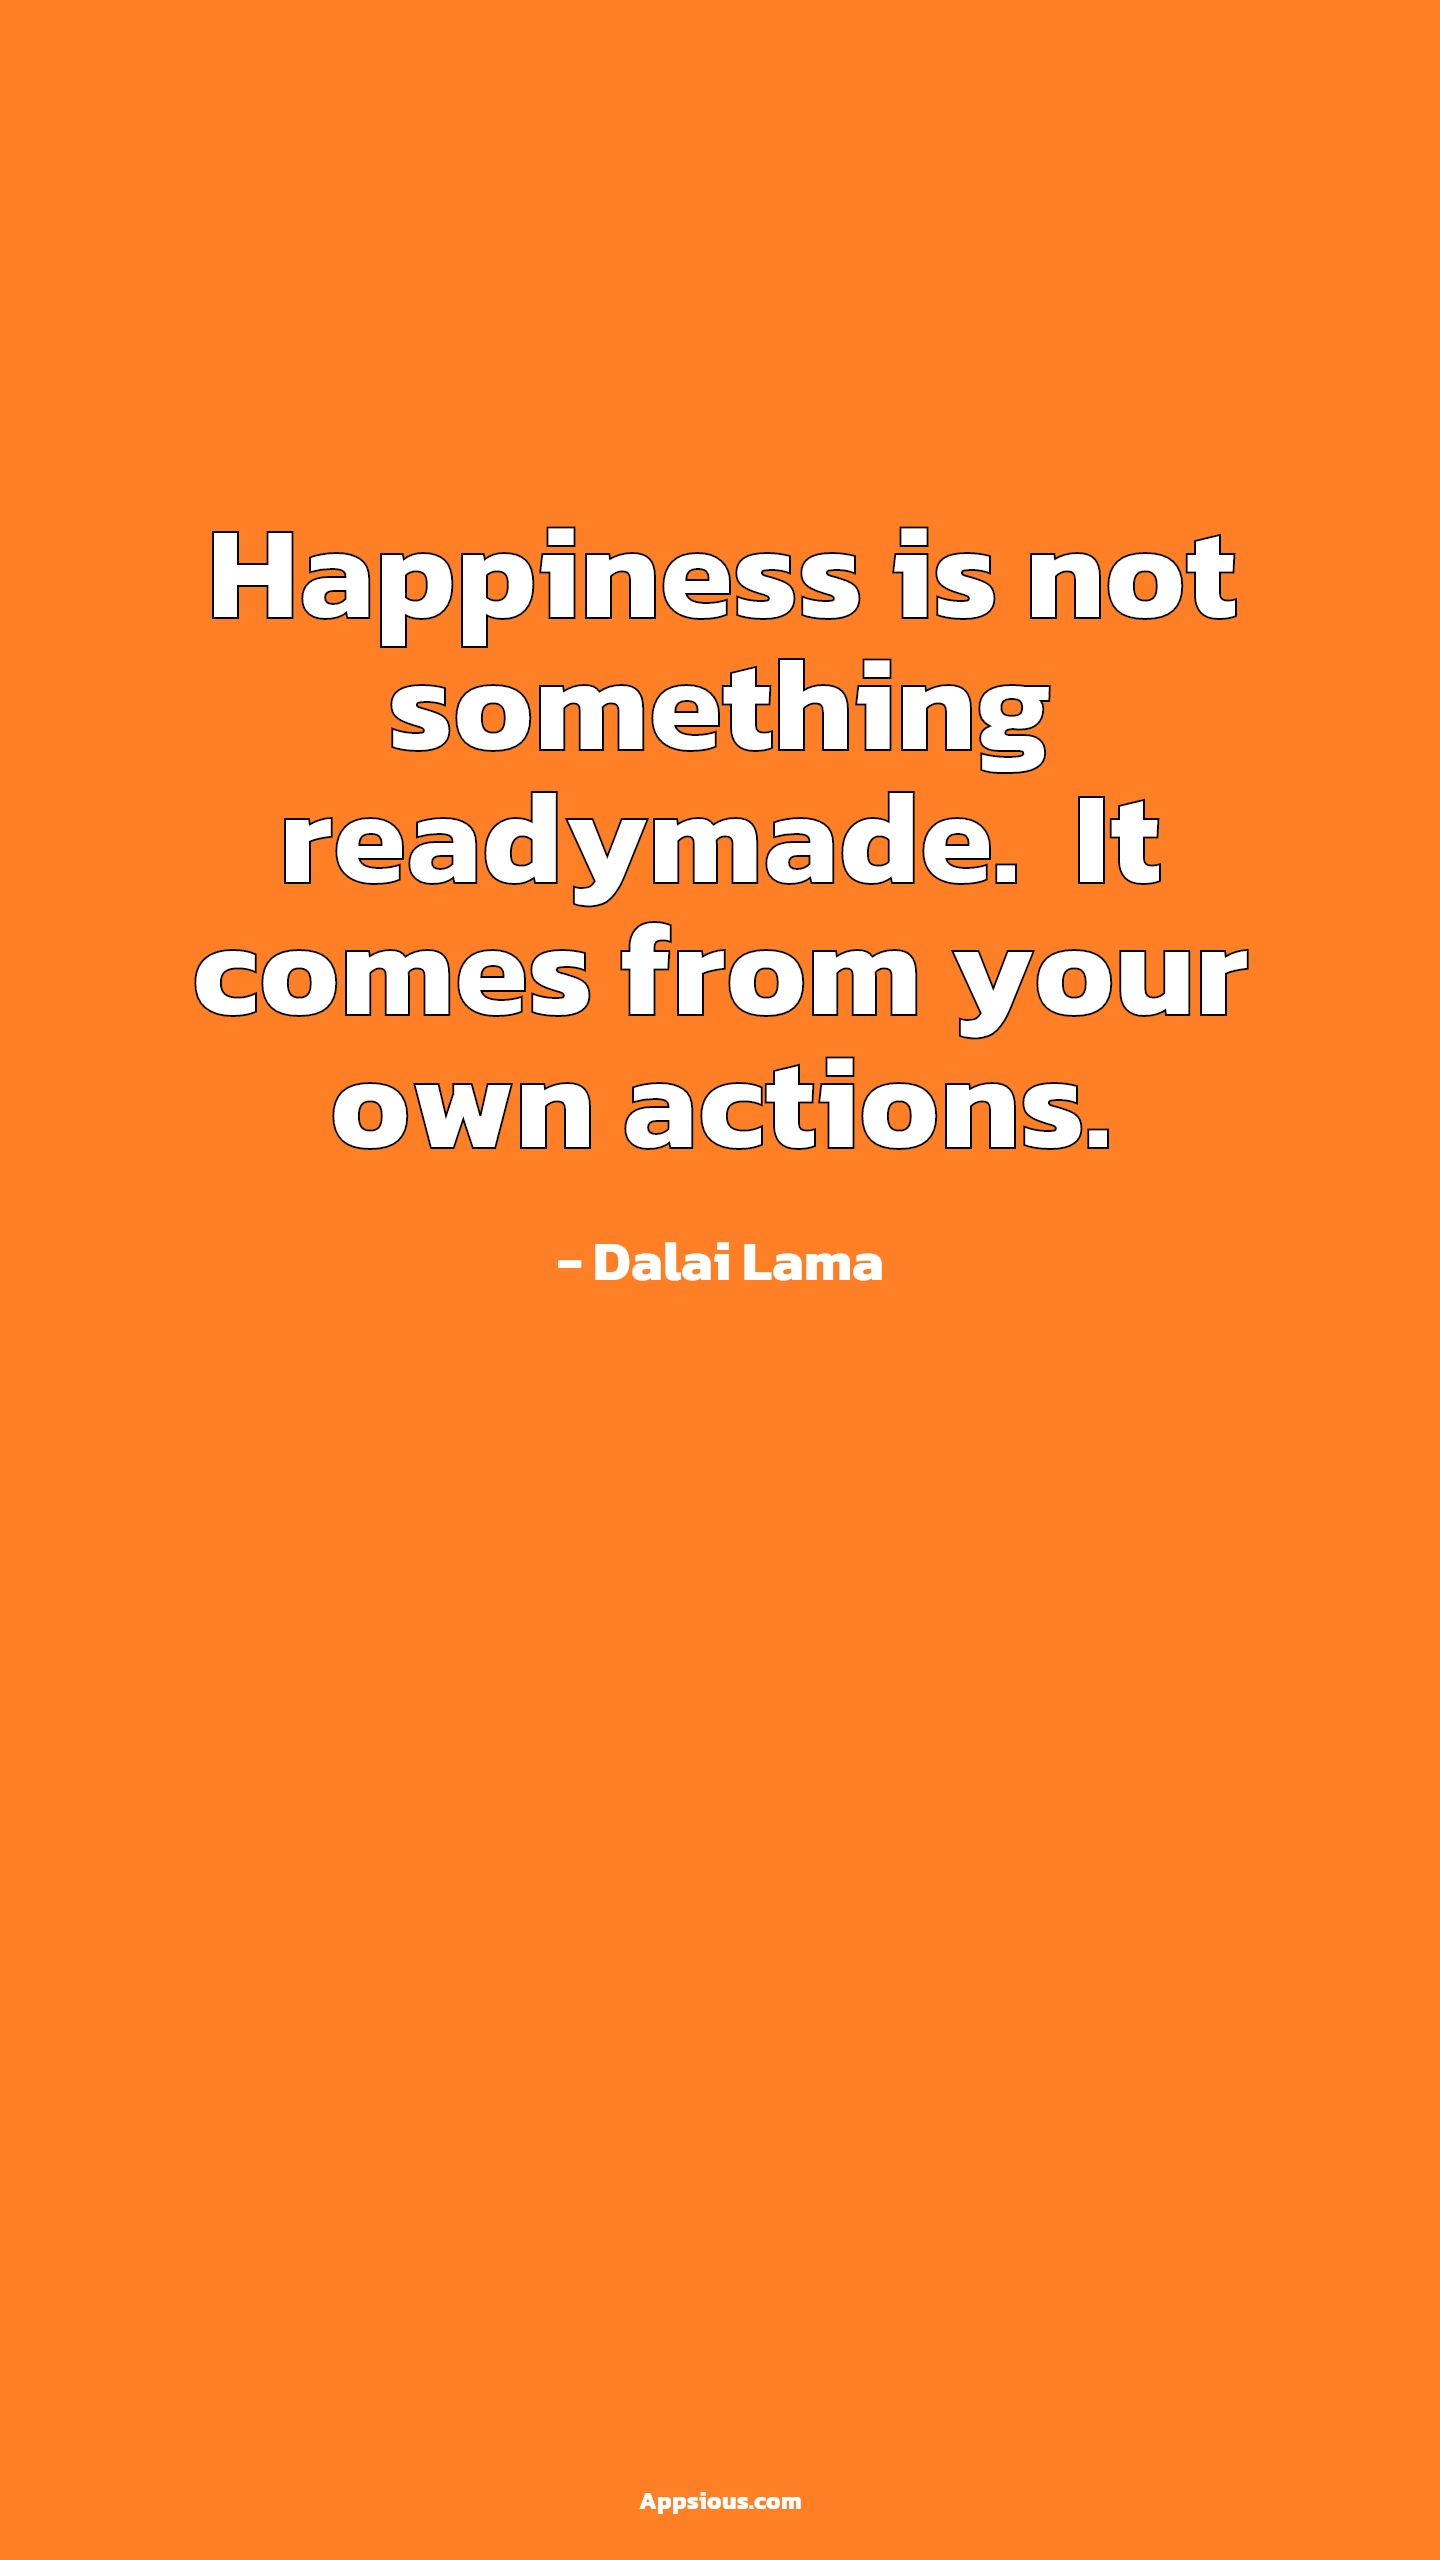 Happiness is not something readymade.  It comes from your own actions.